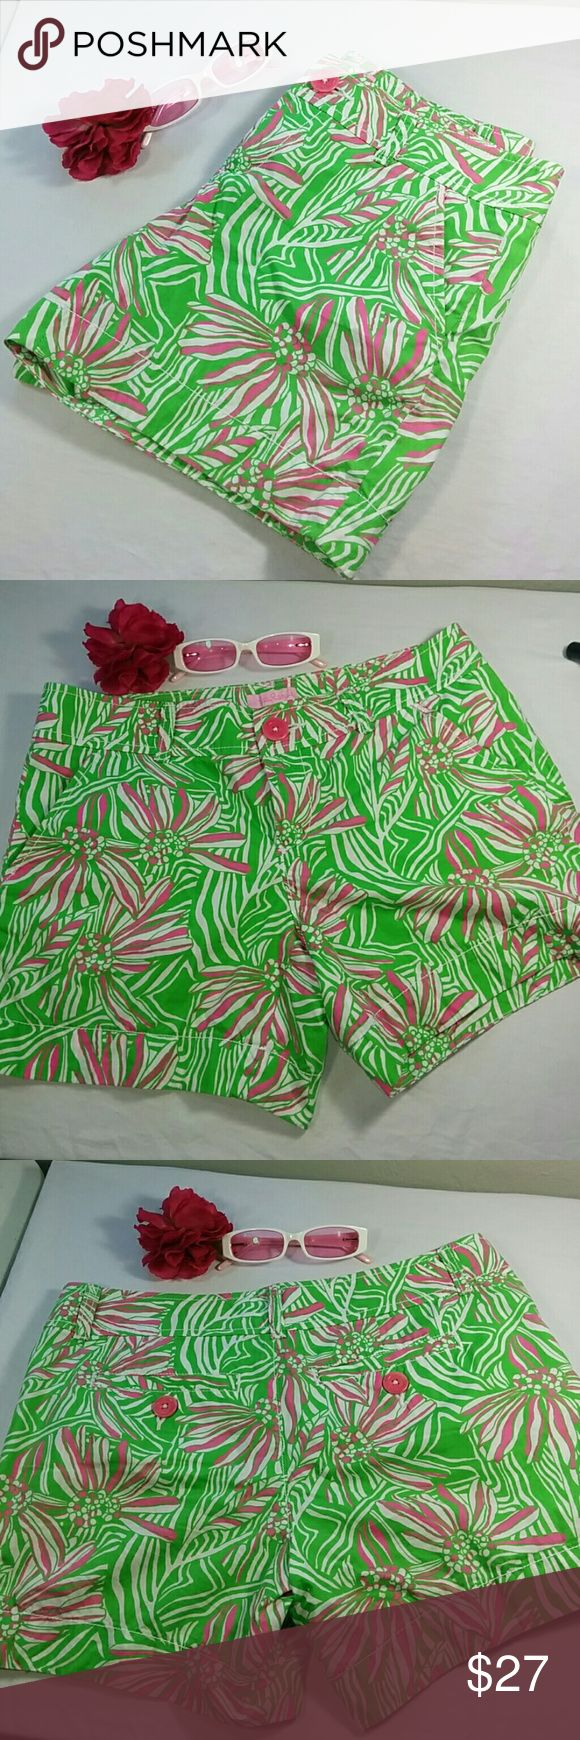 Lilly Pulitzer pink and green shorts Lilly Pulitzer pink and green shorts, flower pattern. Size 2, excellent condition. Lilly Pulitzer Shorts